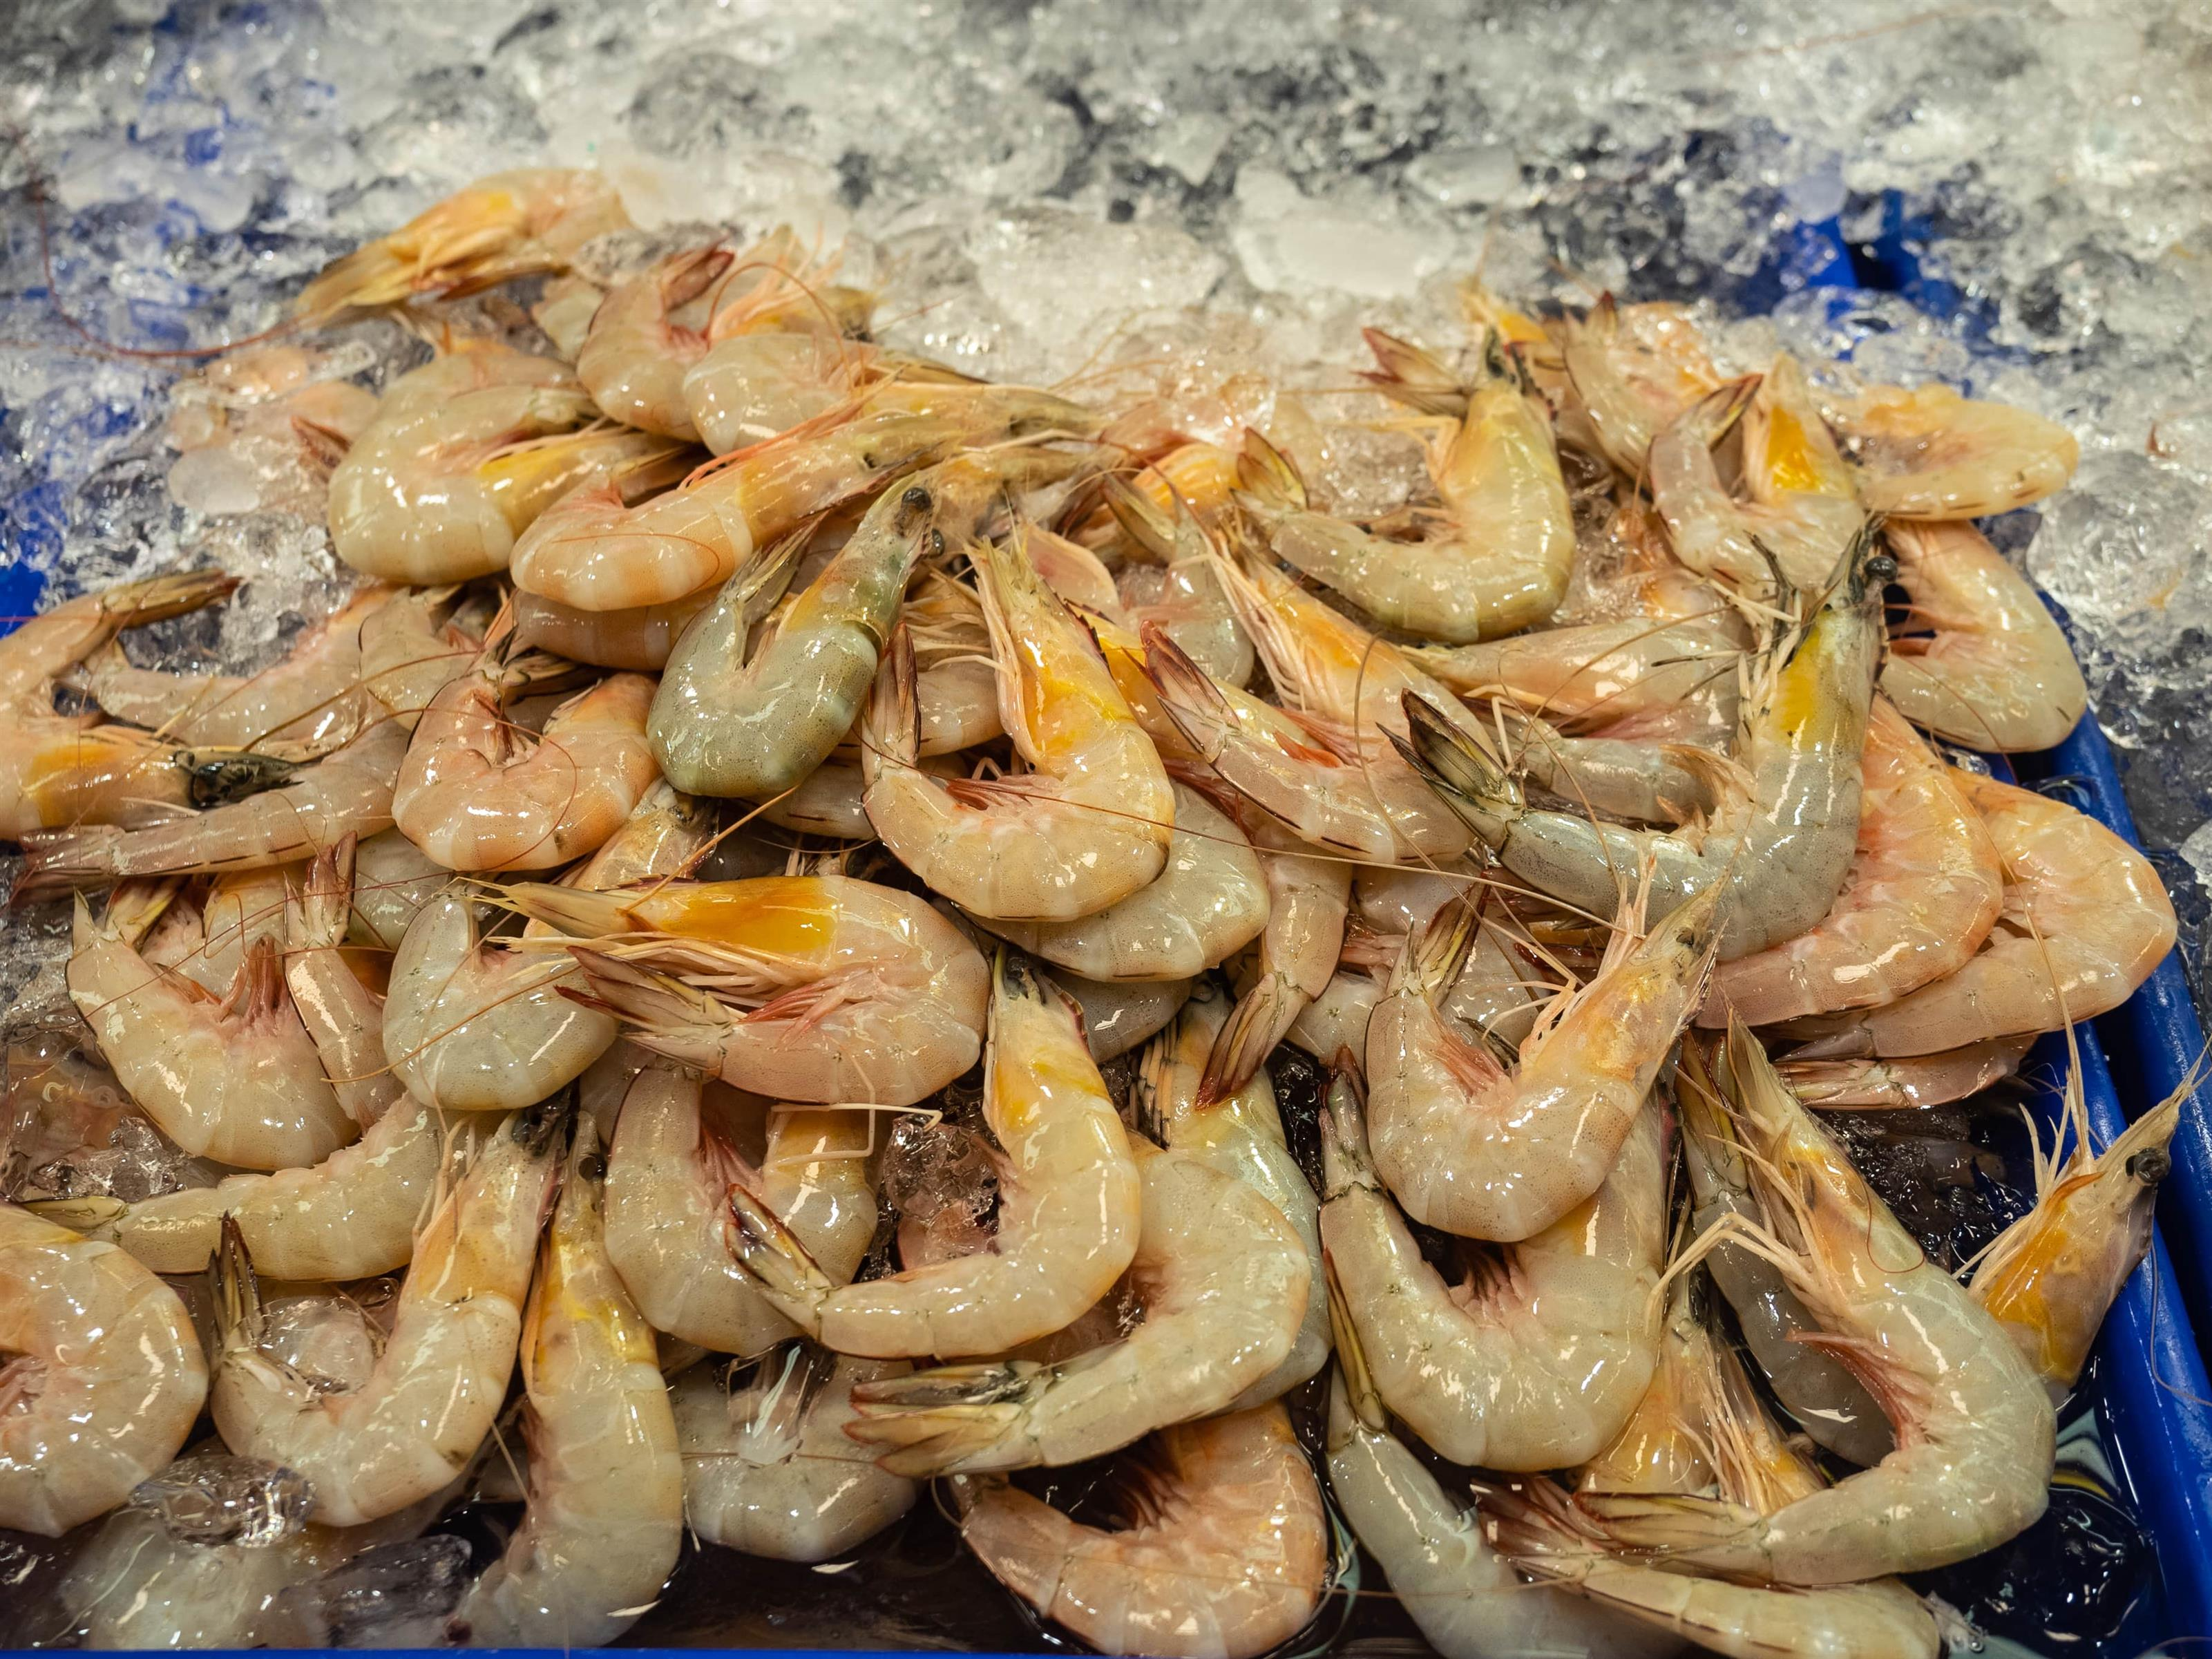 Raw shrimp on bed of ice